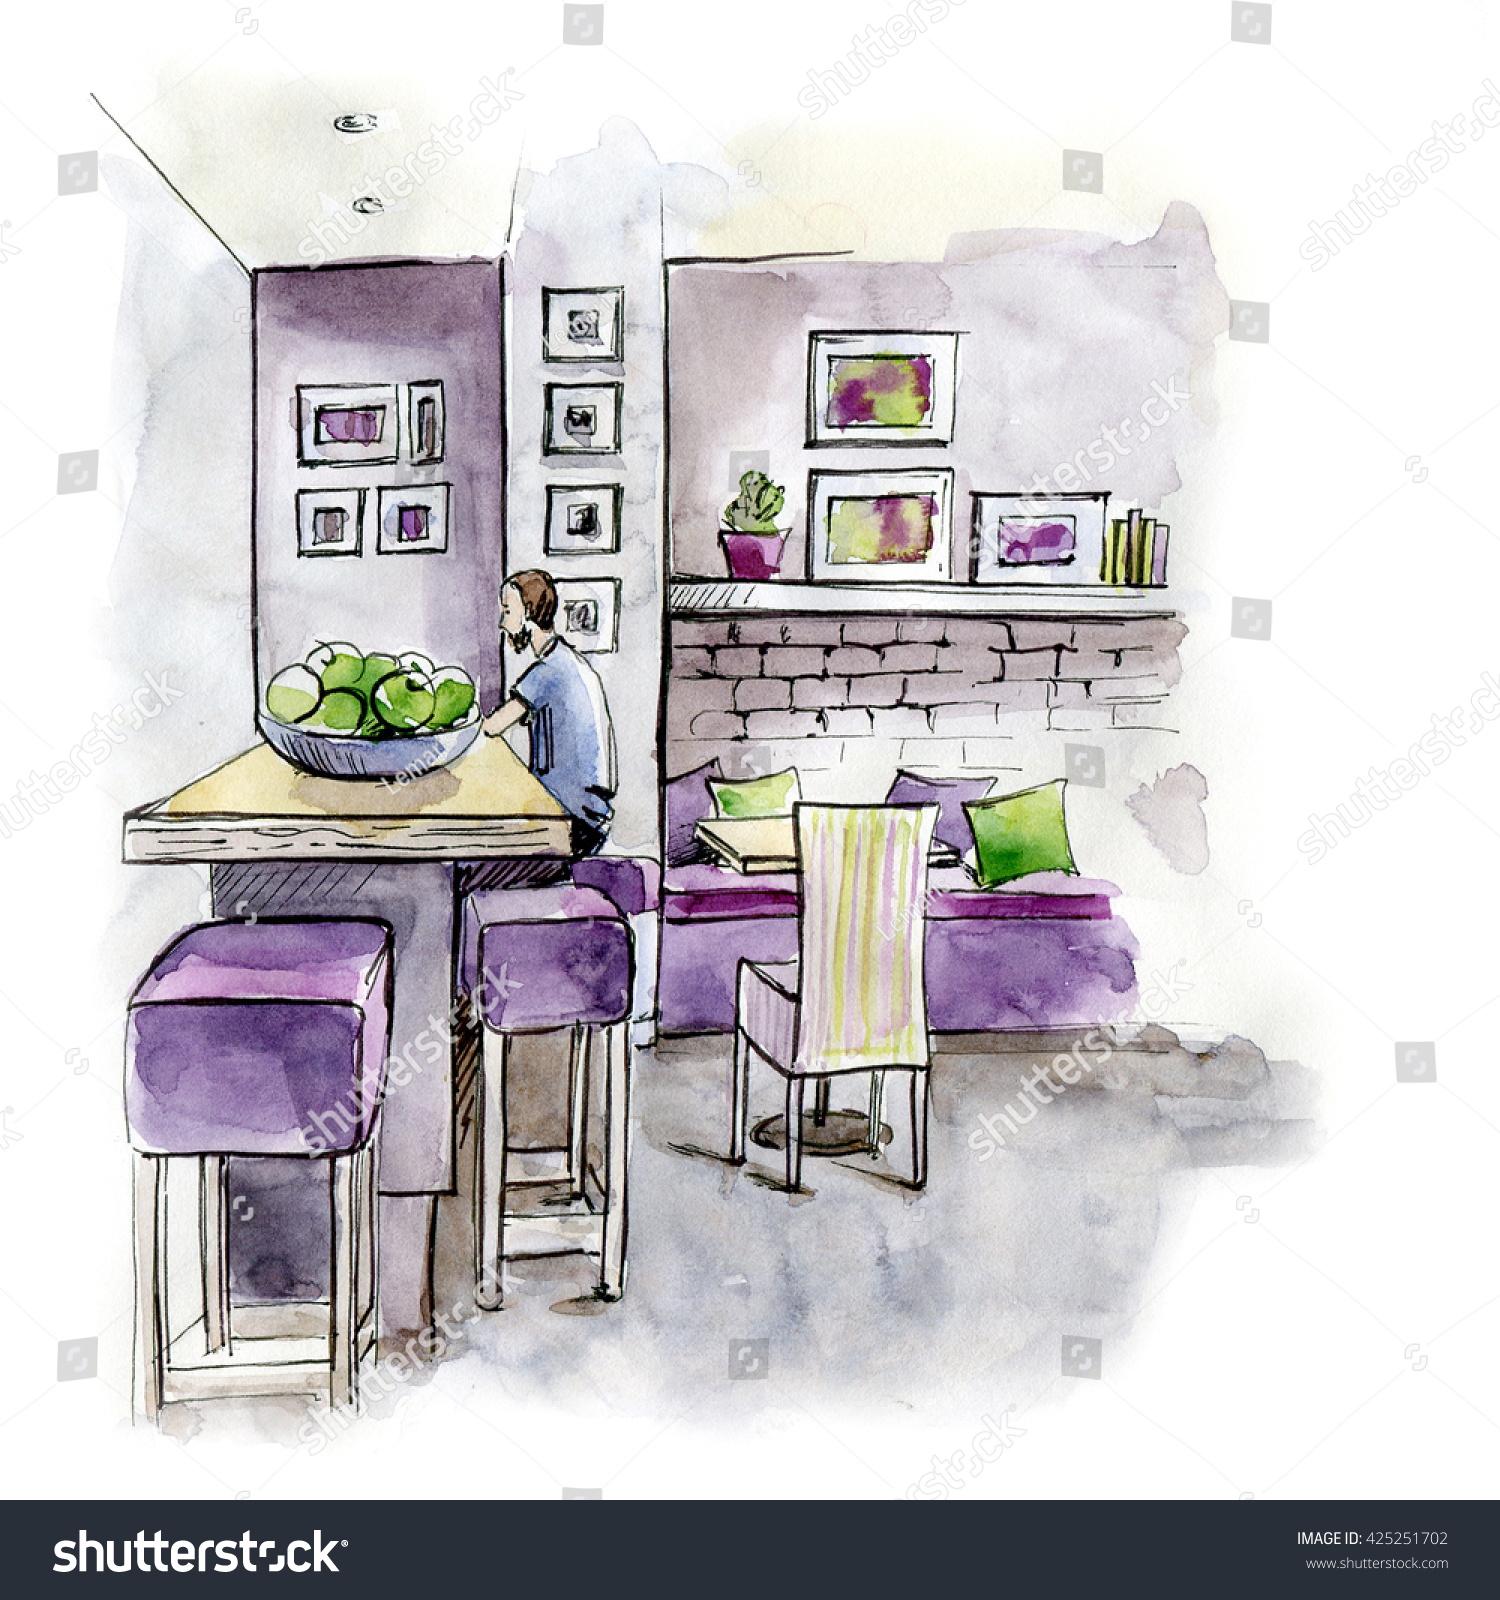 watercolor cafe interior sketch can be stock illustration